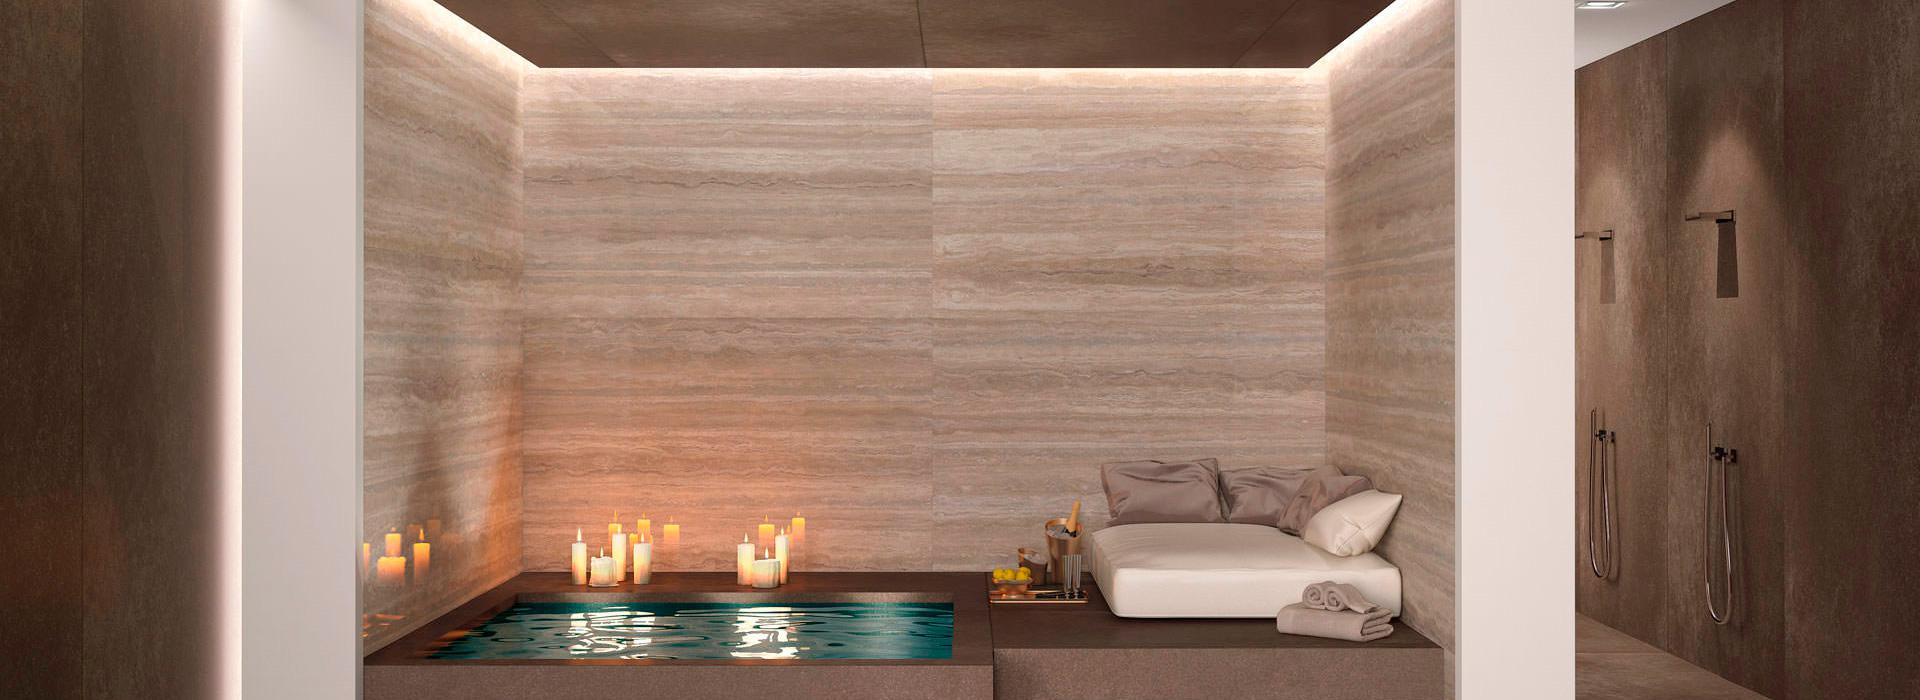 Well-known Travertino Maxfine, big porcelain tiles that look like travertine  LE74